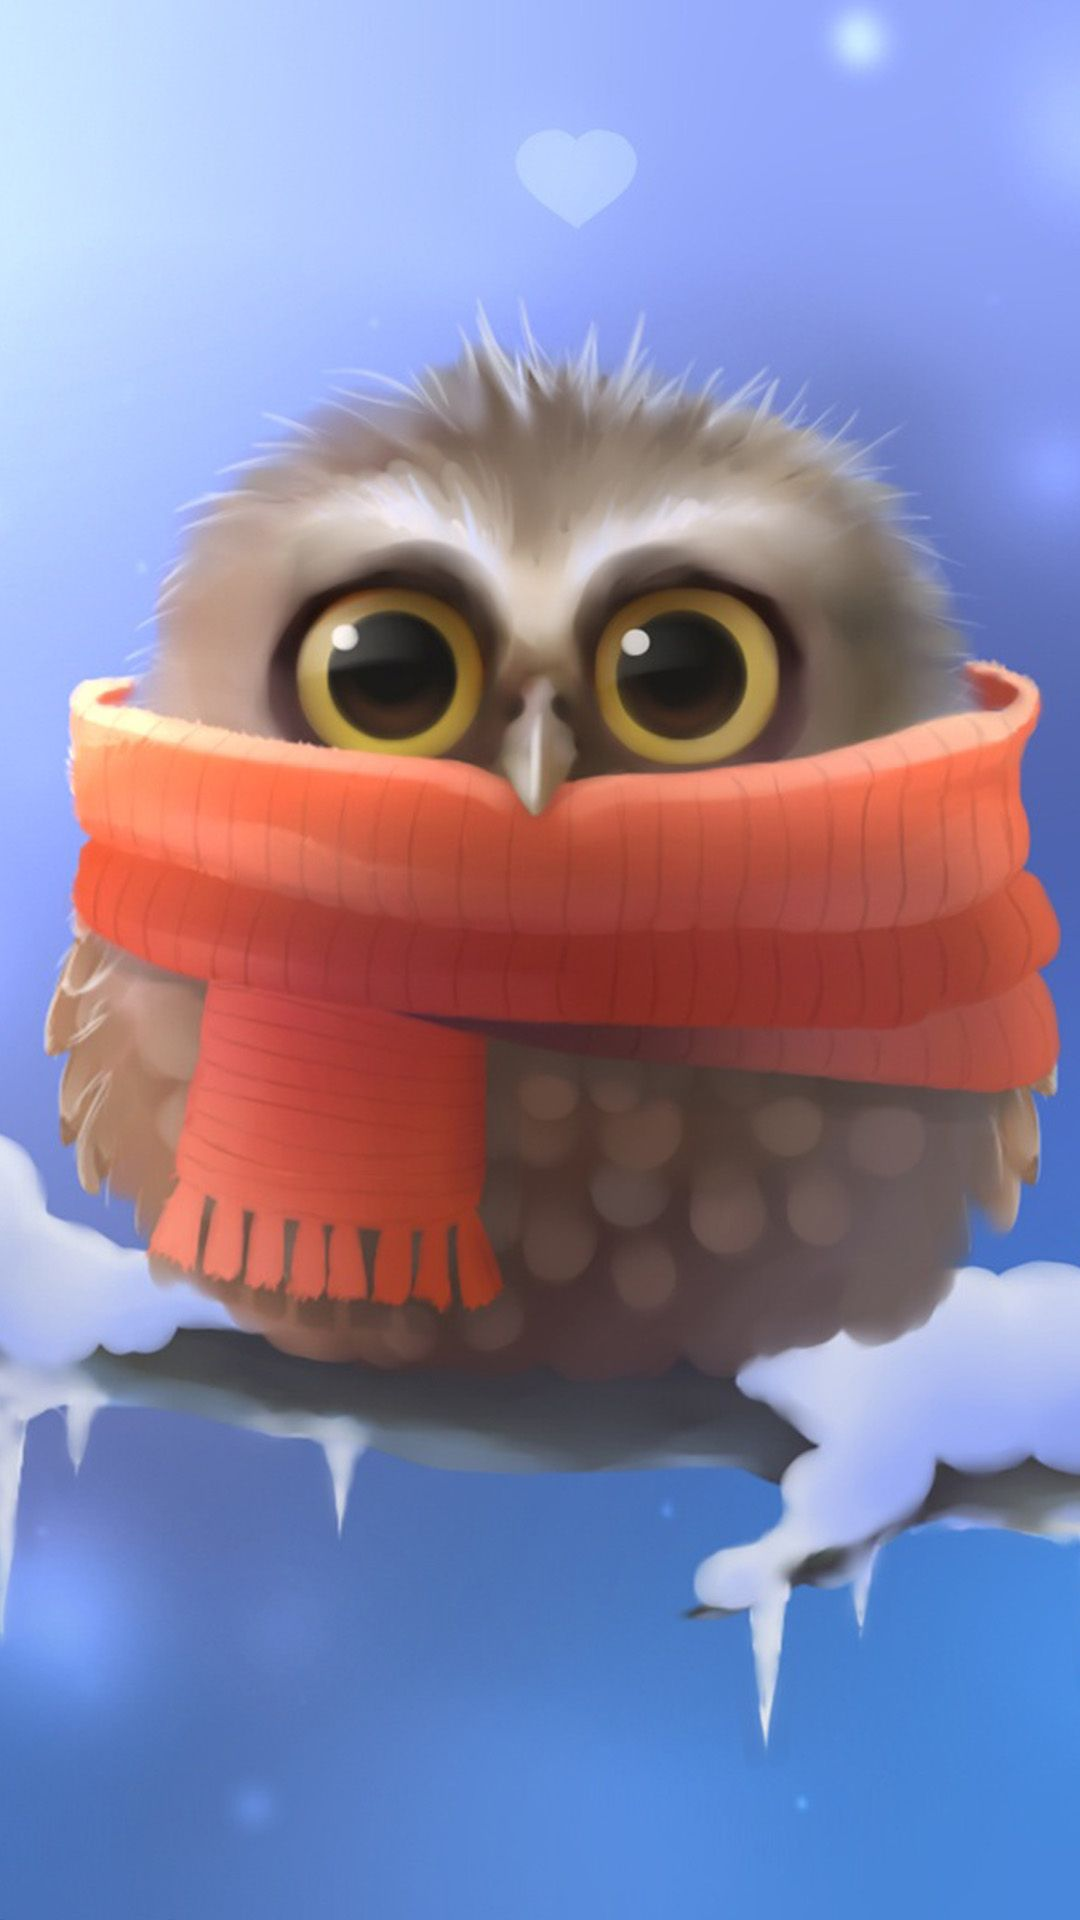 Animal samsung galaxy s5 wallpapers part 4 - Cute Owl Galaxy S5 Wallpapers